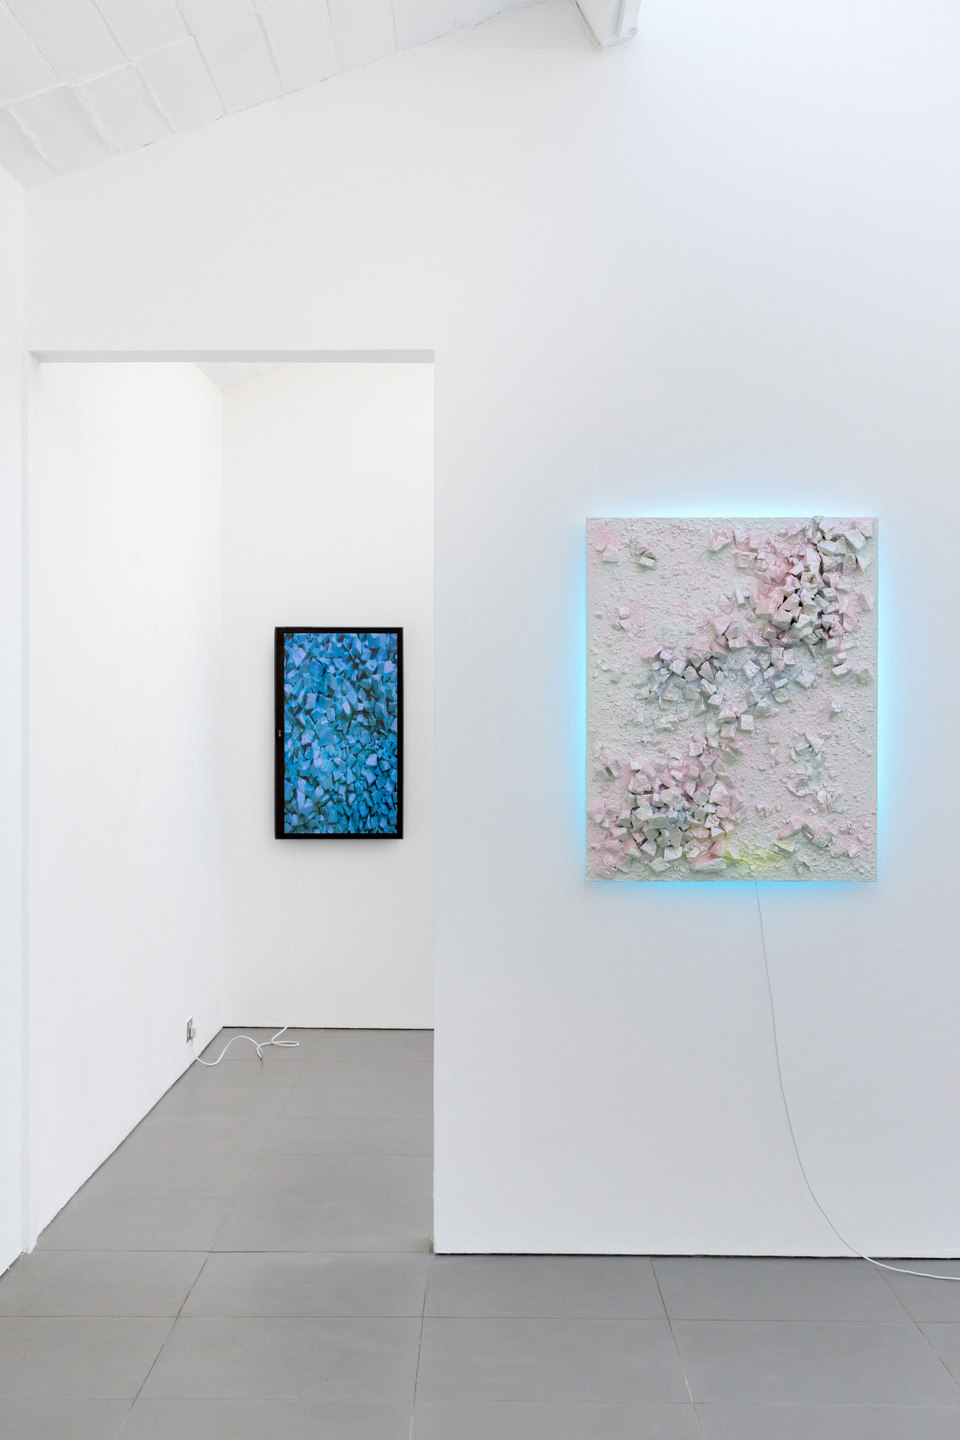 Adham Faramawy, left: Spa Day, 2013, video, duration: 9 minutes, right: Hi! I'm happy you're here 1, 2014, plaster, jesmonite, spray paint, led light, (l. 100 cm x w. 80 cm), Cell Project Space, HYDRA, 2014